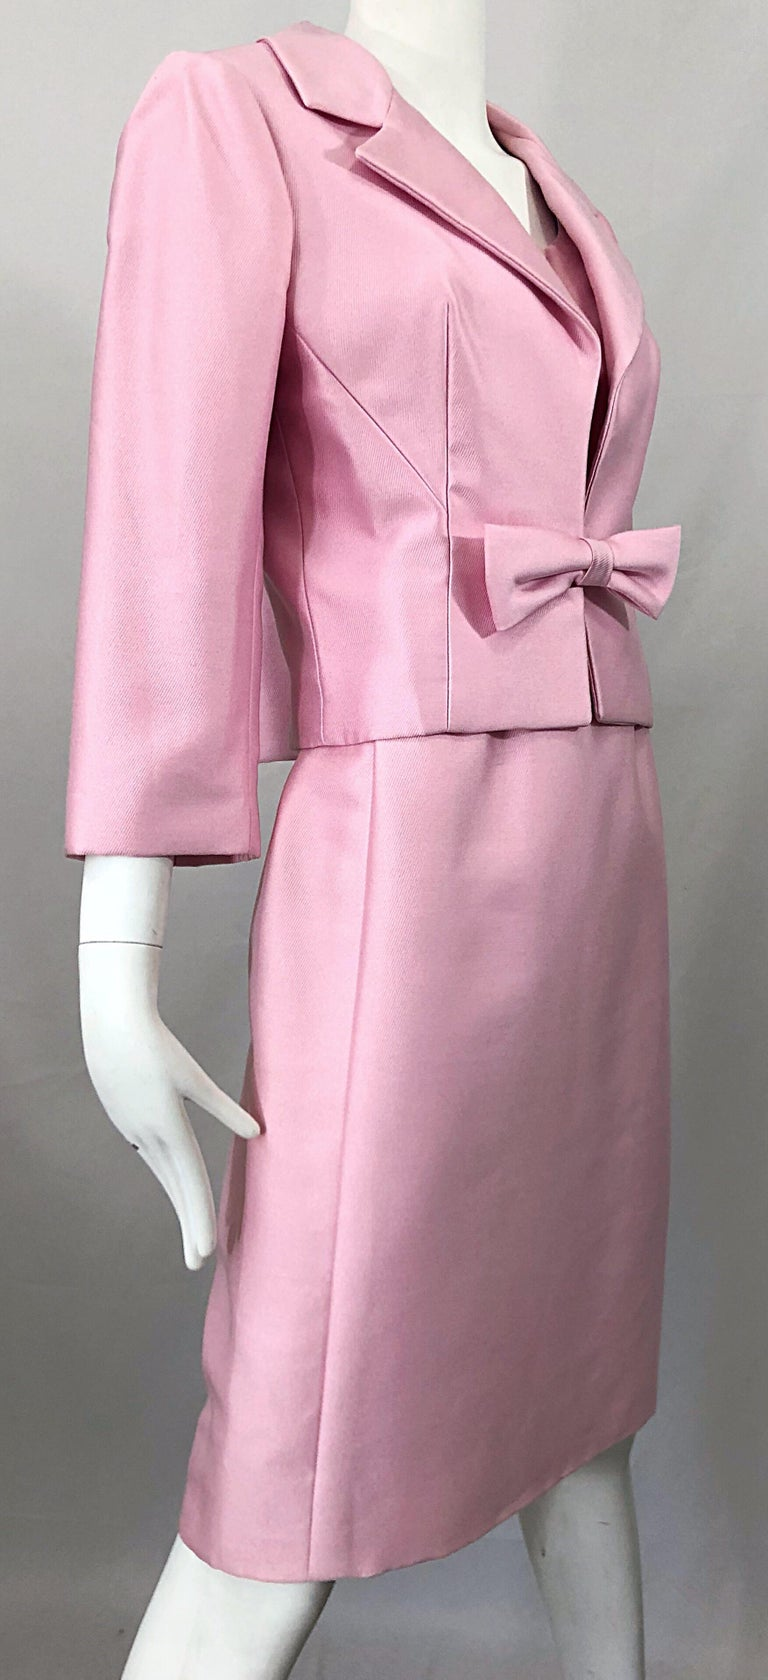 Women's Chic 1960s Pat Sandler Light Pink Vintage 60s Silk Shift Dress and Jacket Suit For Sale